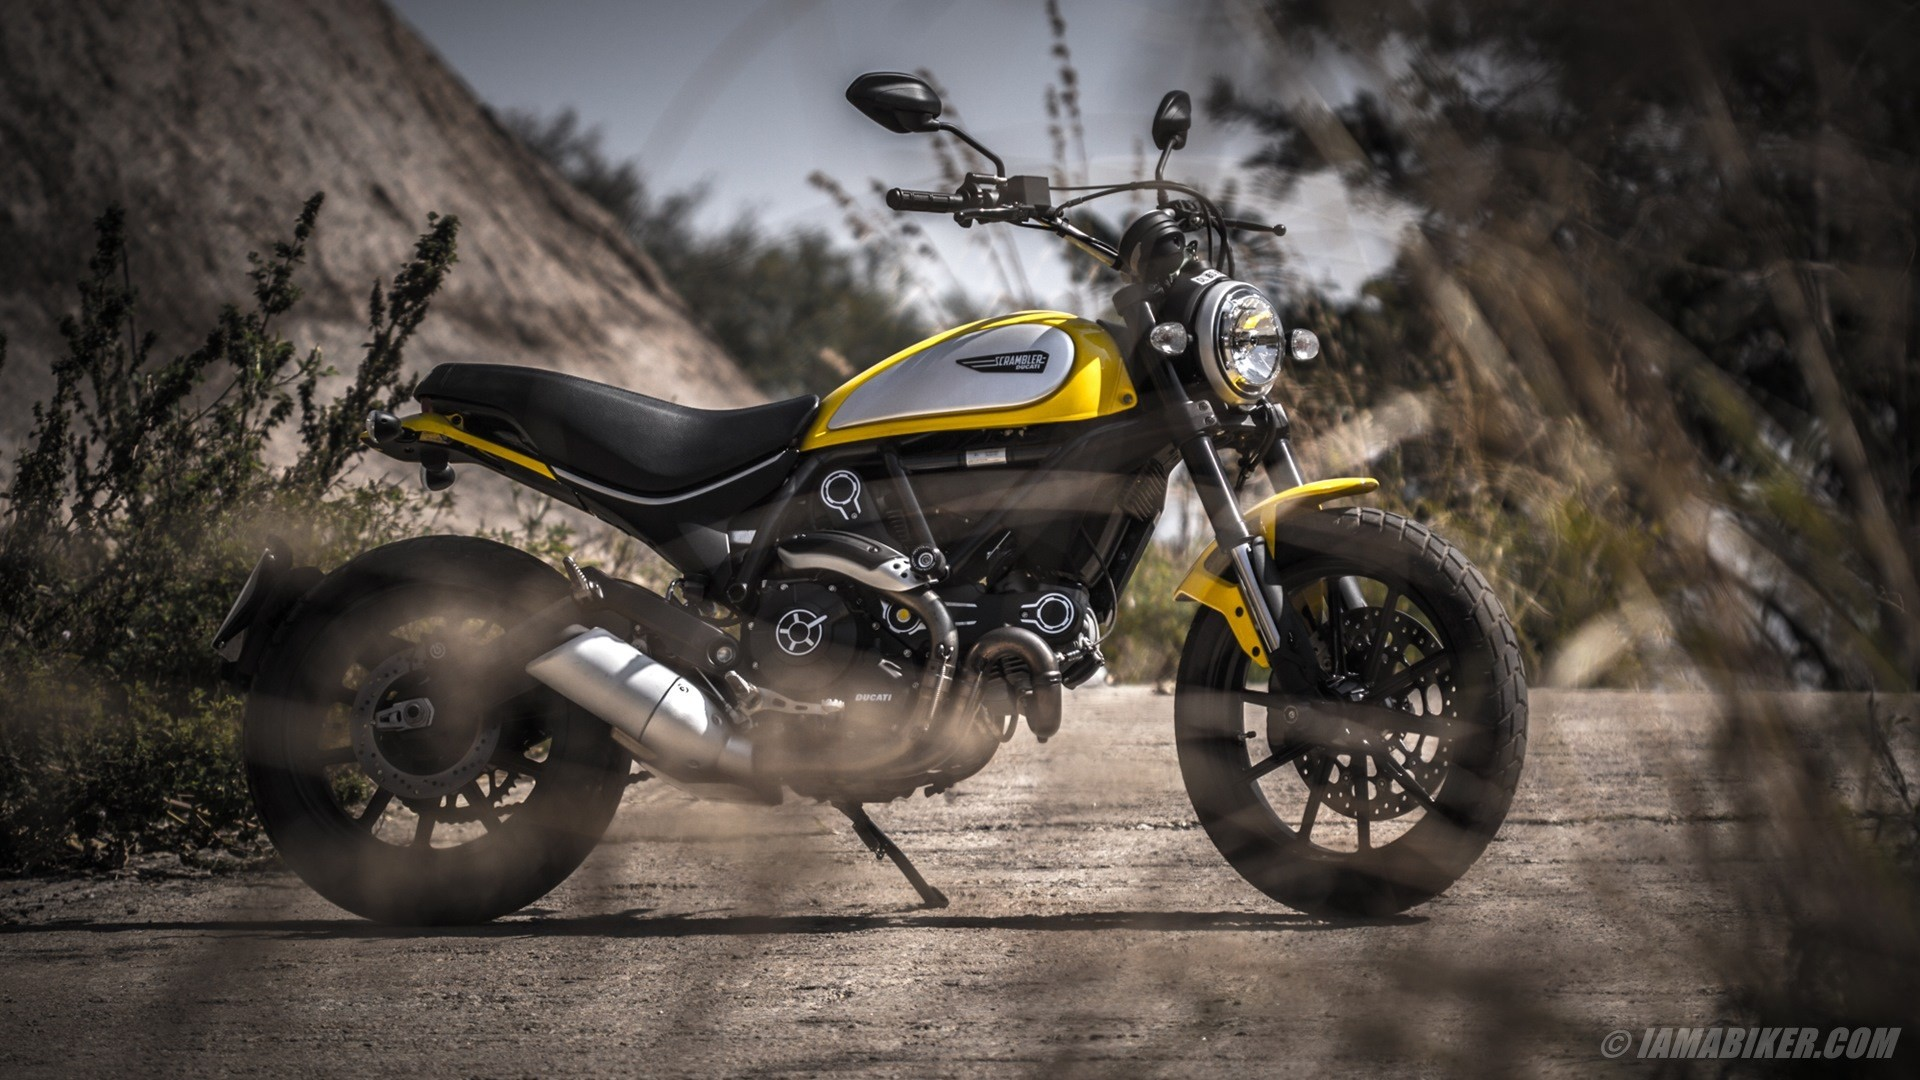 1920x1080 ducati-scrambler-hd-wallpapers-6